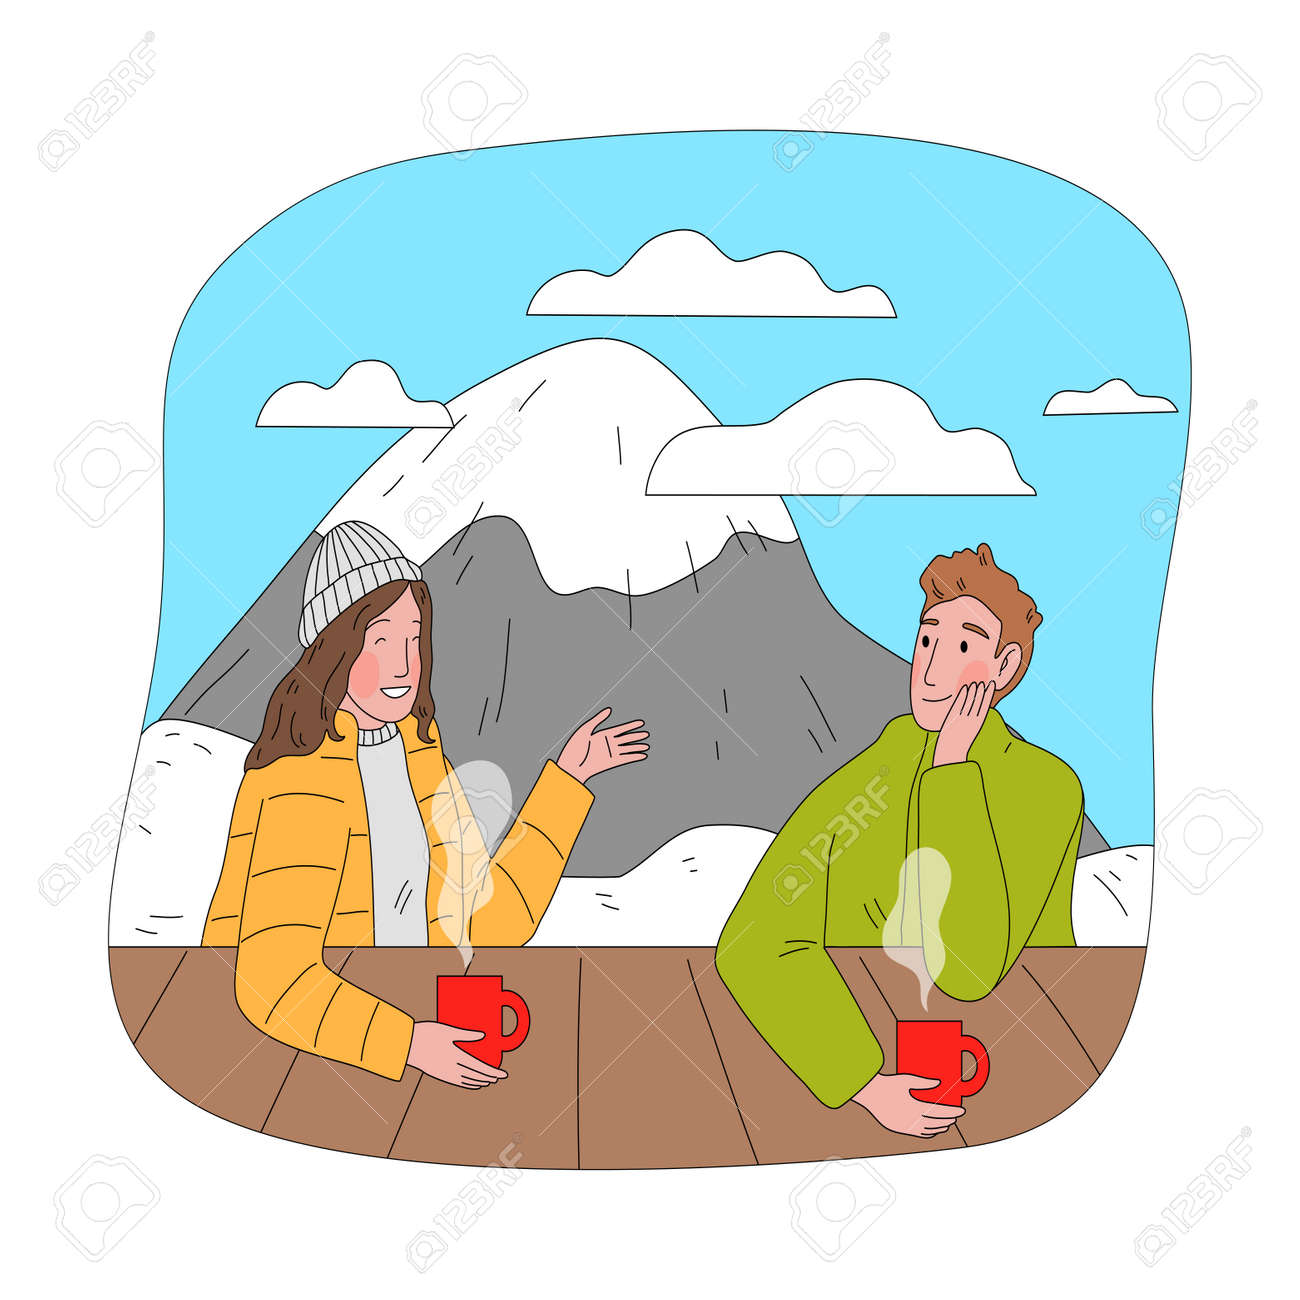 Happy couple sitting drinking hot tea and chatting after practicing snowboarding - 162070074